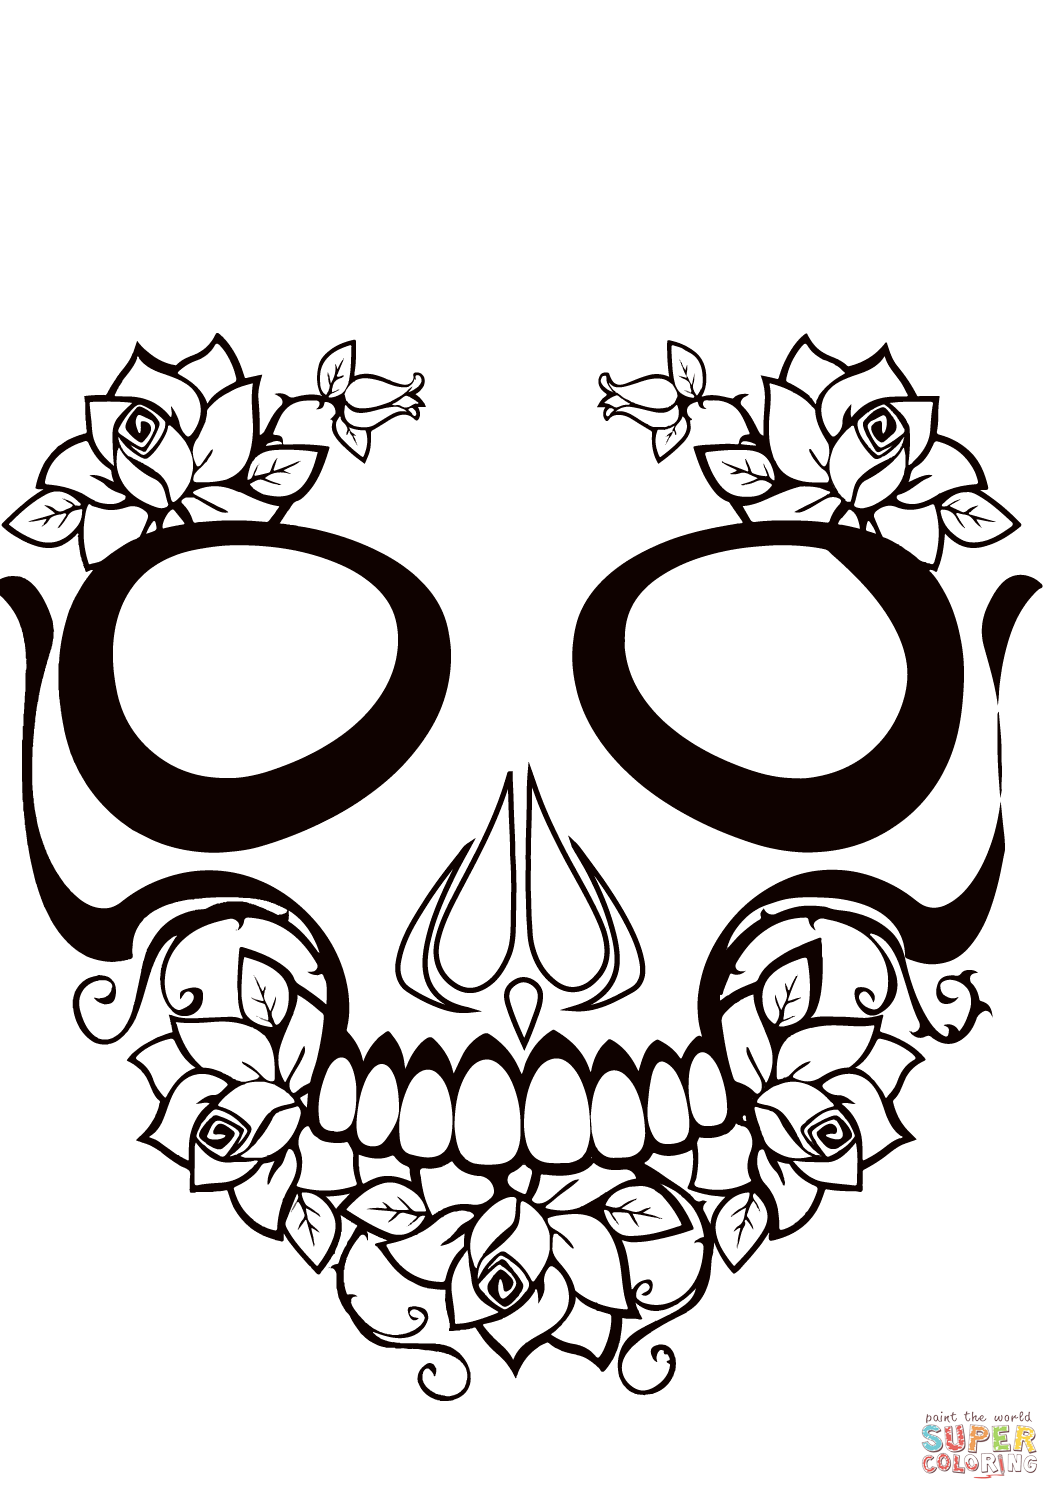 Sugar Skull Black And White Drawing at GetDrawings.com | Free for ...